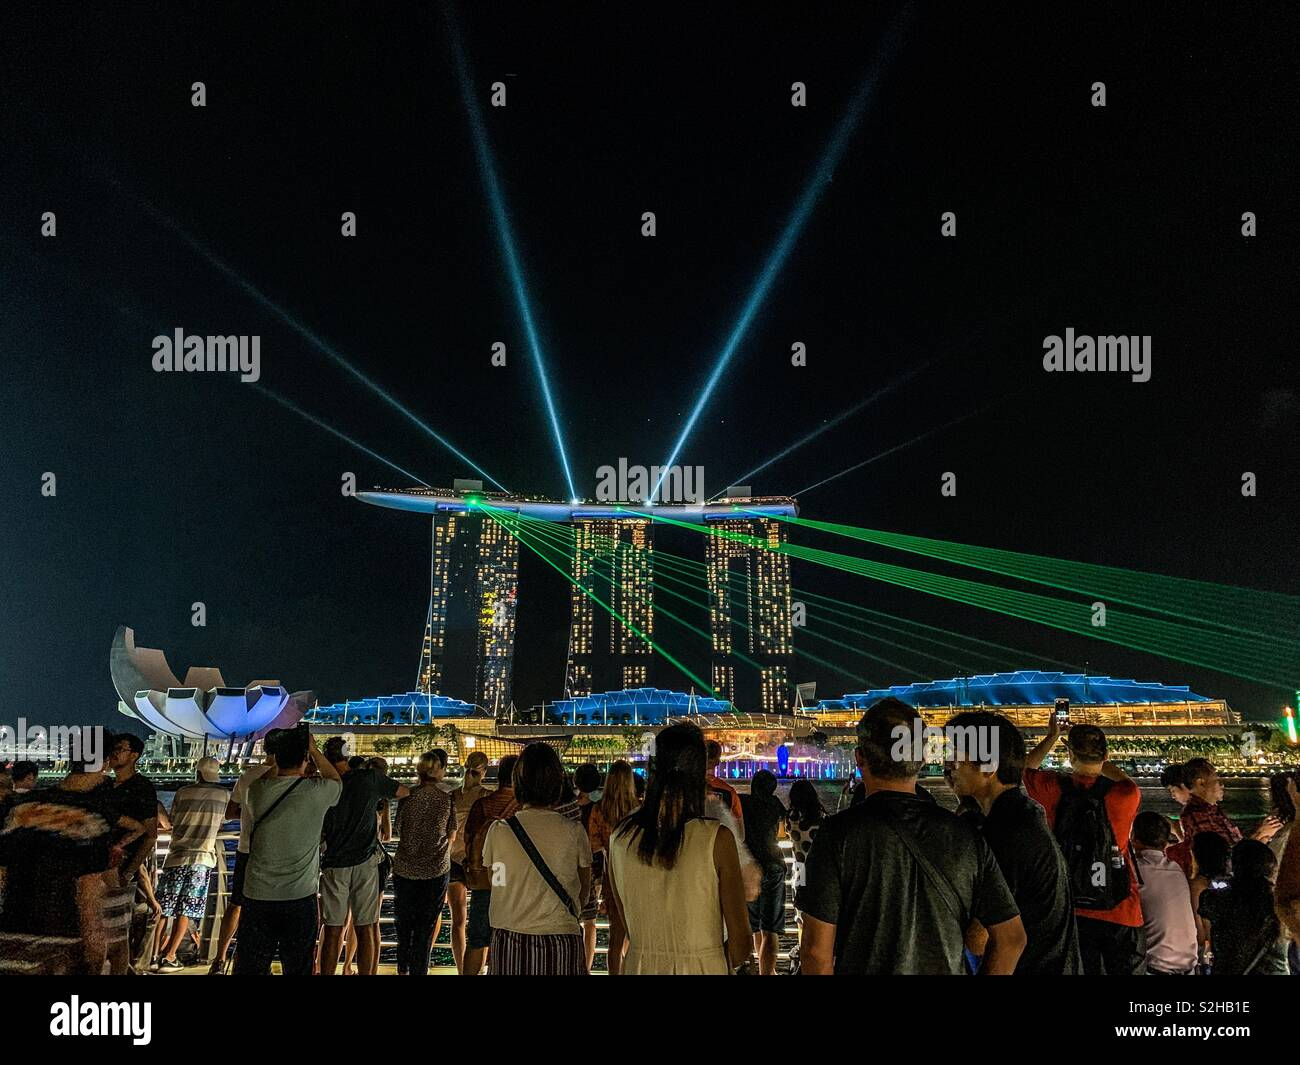 Crowd gather at the Merlion Park pavilion to watch the laser light show by Marina Bay Sands. - Stock Image